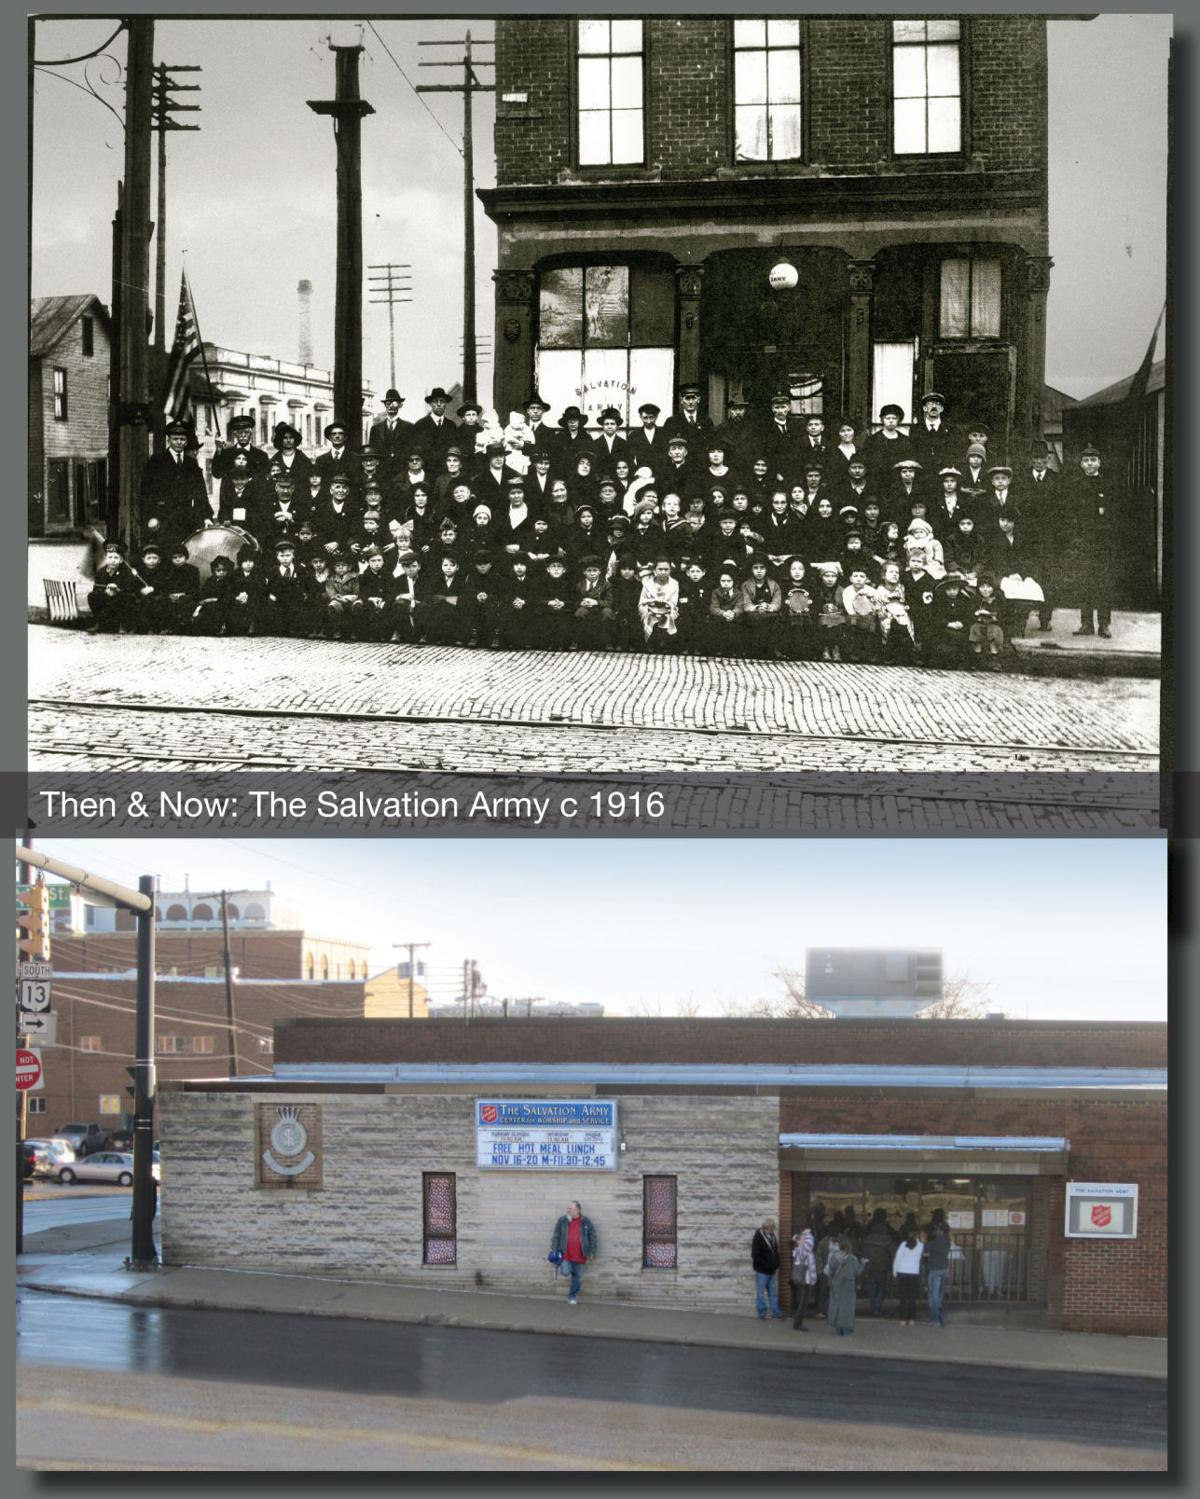 Then & Now: Salvation Army